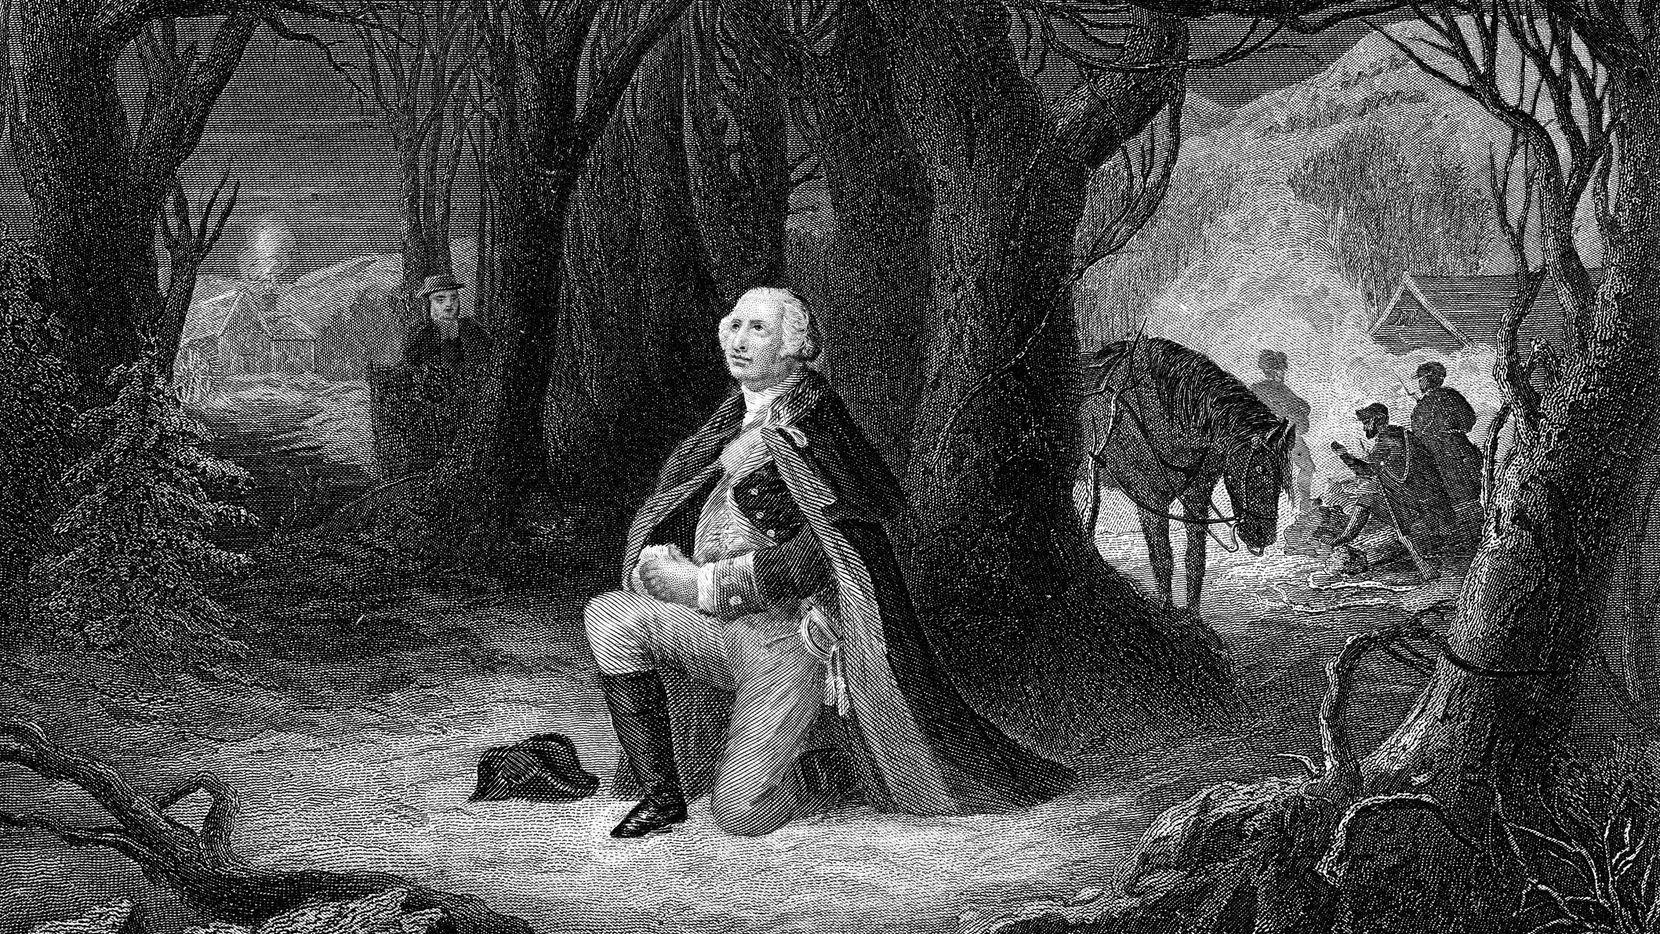 Engraving From 1882 Of George Washington Praying At Valley Forge During The American Revolutionary War.